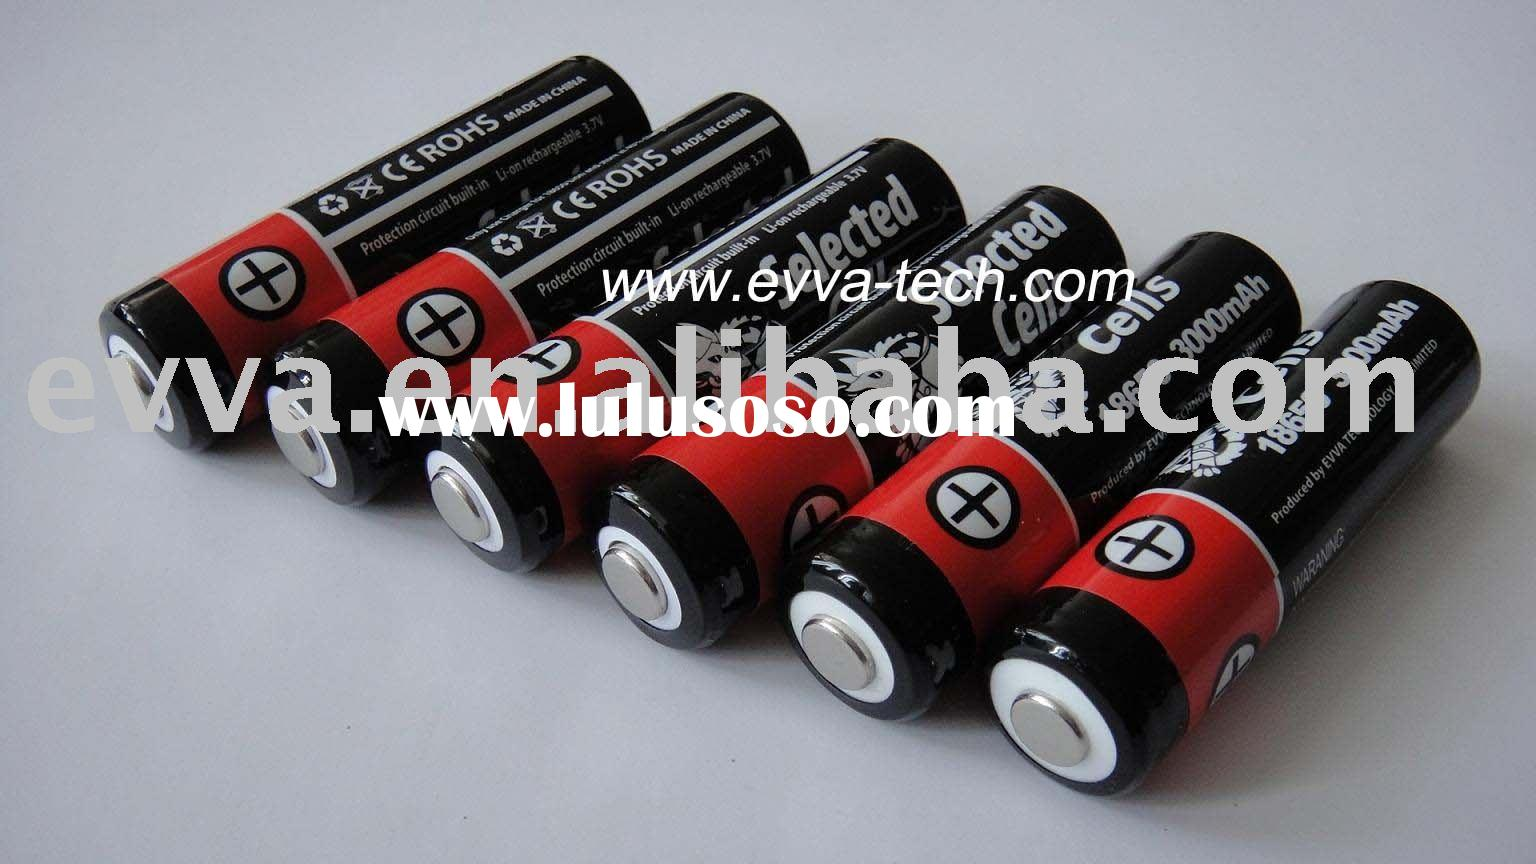 Li-ion rechargeable Flashlight Battery Protected 18650 3000mAh 3.7V